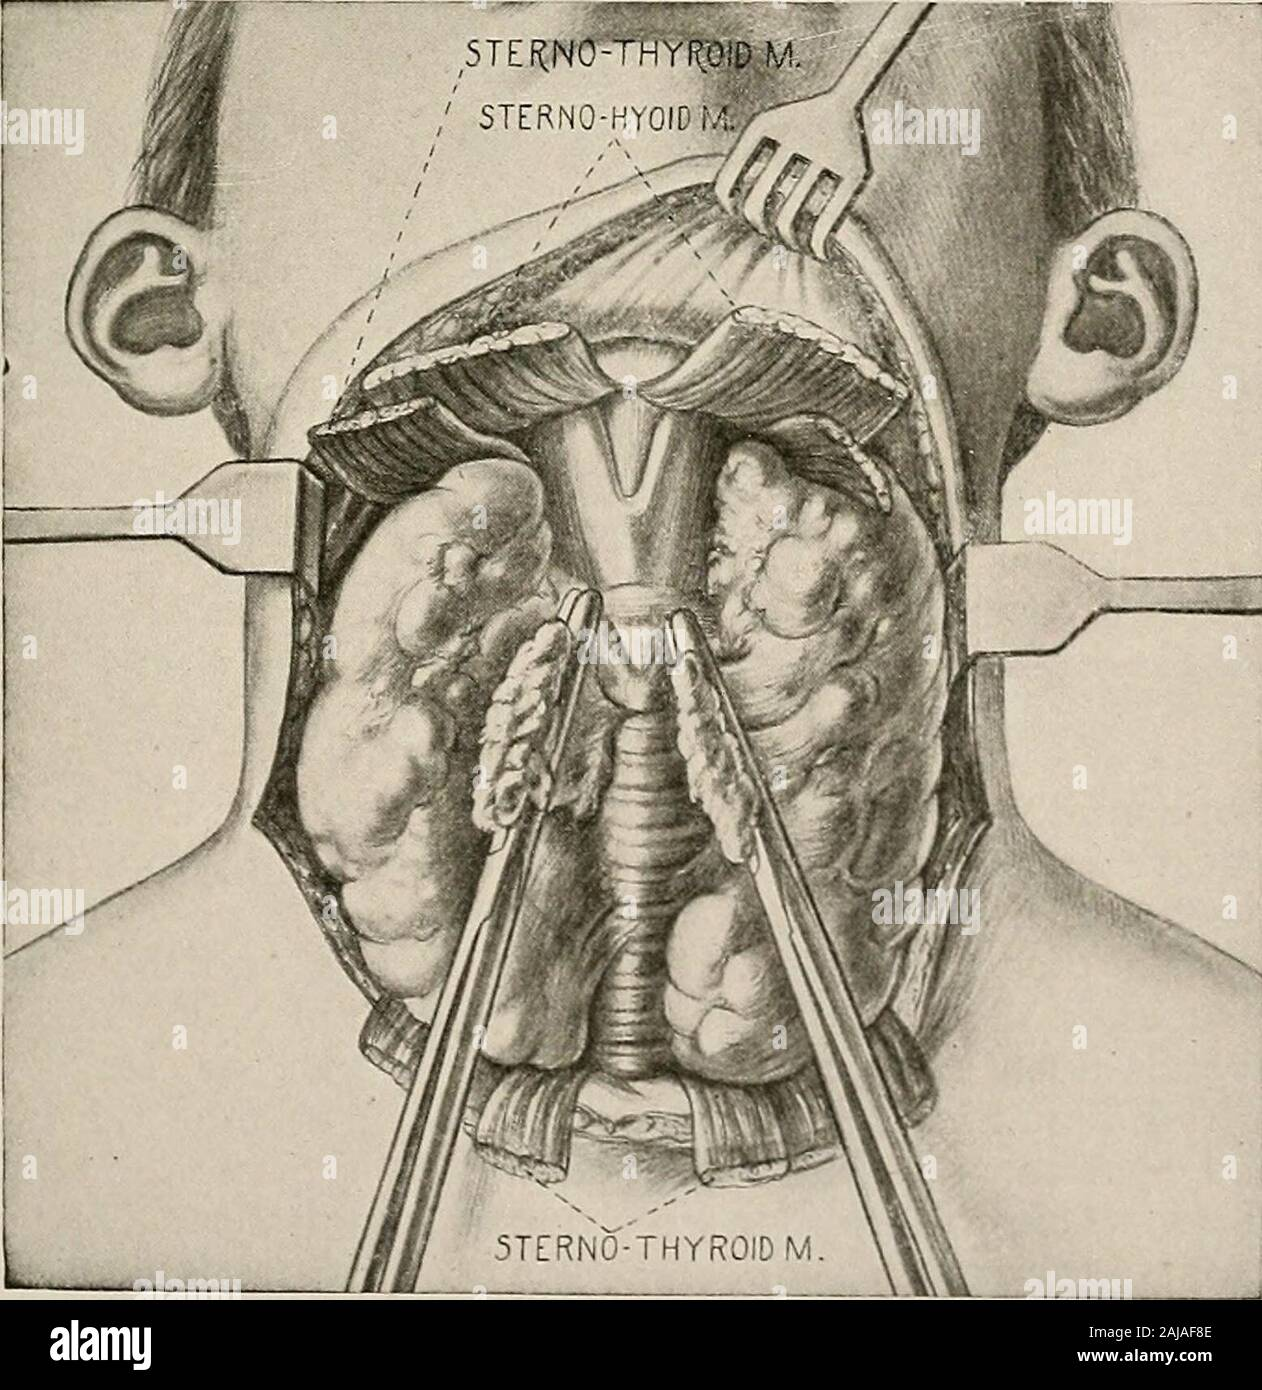 Surgical treatment; a practical treatise on the therapy of surgical diseases for the use of practitioners and students of surgery . Fig. 1083.—Operation for Double Goiter.Goiter exposed by transverse incision. Isthmus clamped and divided. 388 SURGICAL TREATMENT ning suture is carried along the edge of the wound (Fig. 1084). The sameoperation is done in the other lobe. The amount of gland tissue to be leftin the two lobes must be determined by the judgment of the surgeon. Itshould be planned that the patient shall be left an amount of thyroid tissuecapable of satisfying the physiologic needs. T Stock Photo